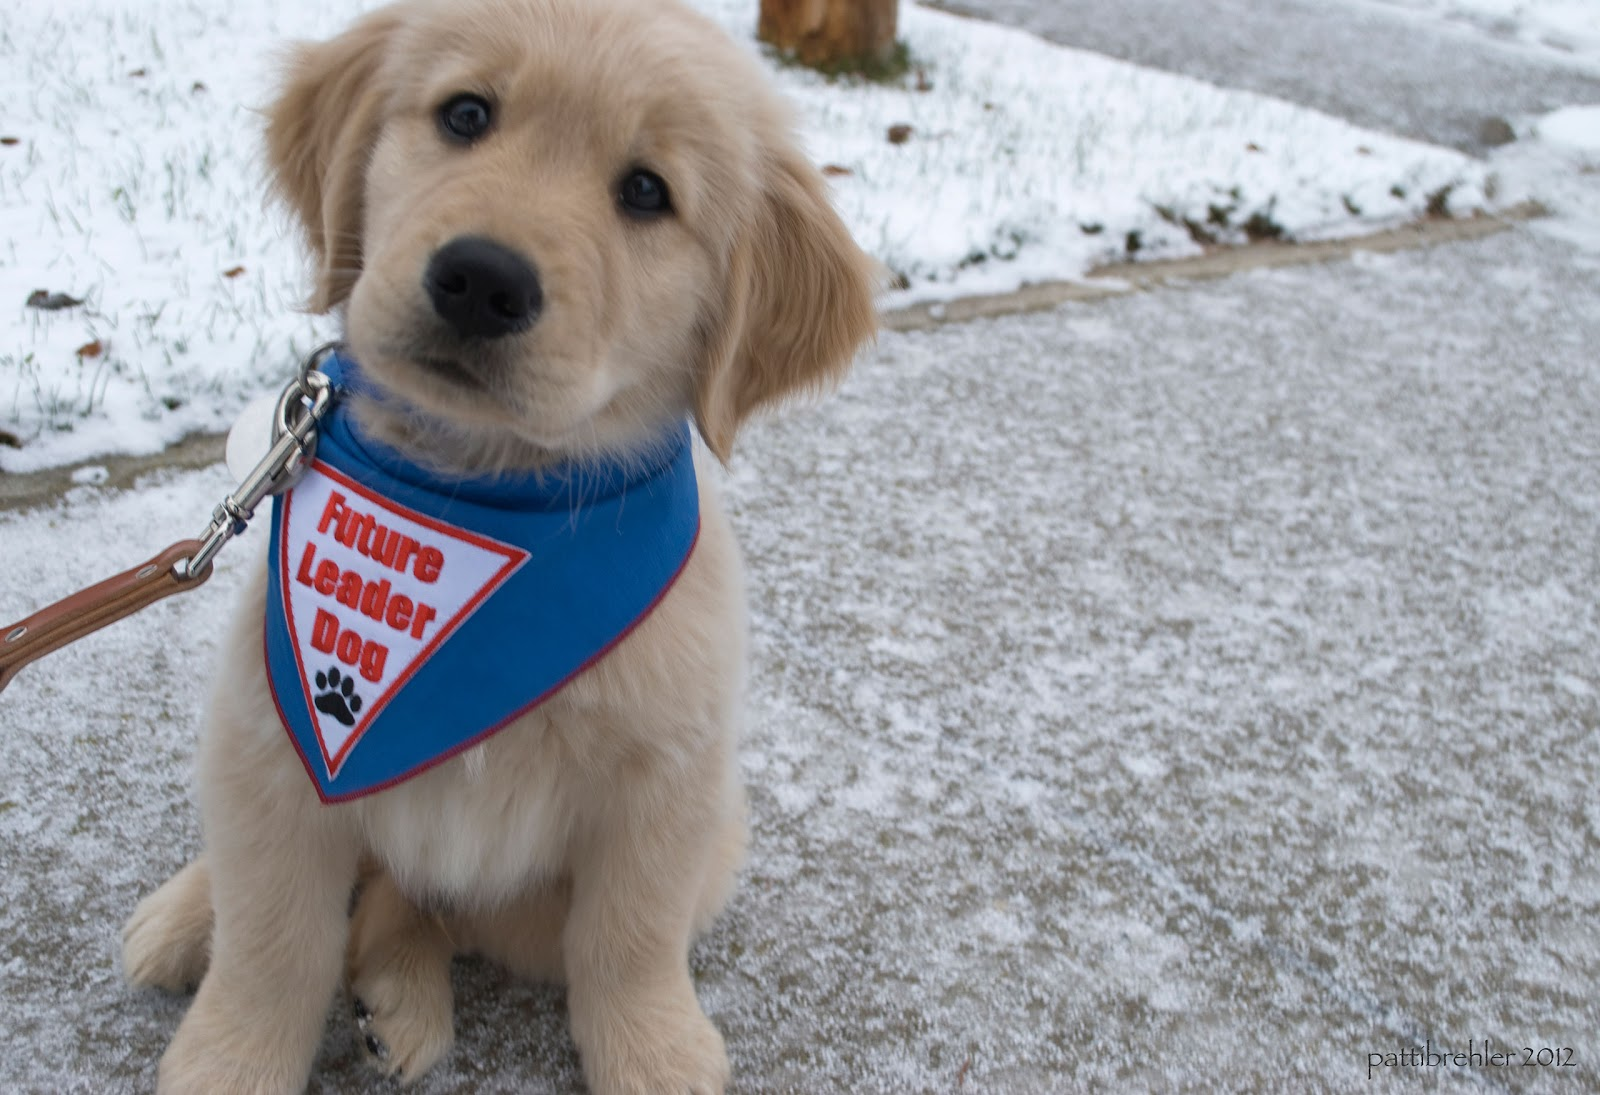 A small golden retriever puppy is sitting on a snowy sidewalk looking at the camera. He is wearing a blue bandana with a white triangle with red letters that say Future Leader Dog and has a black paw print. A leash is hanging from is collar.